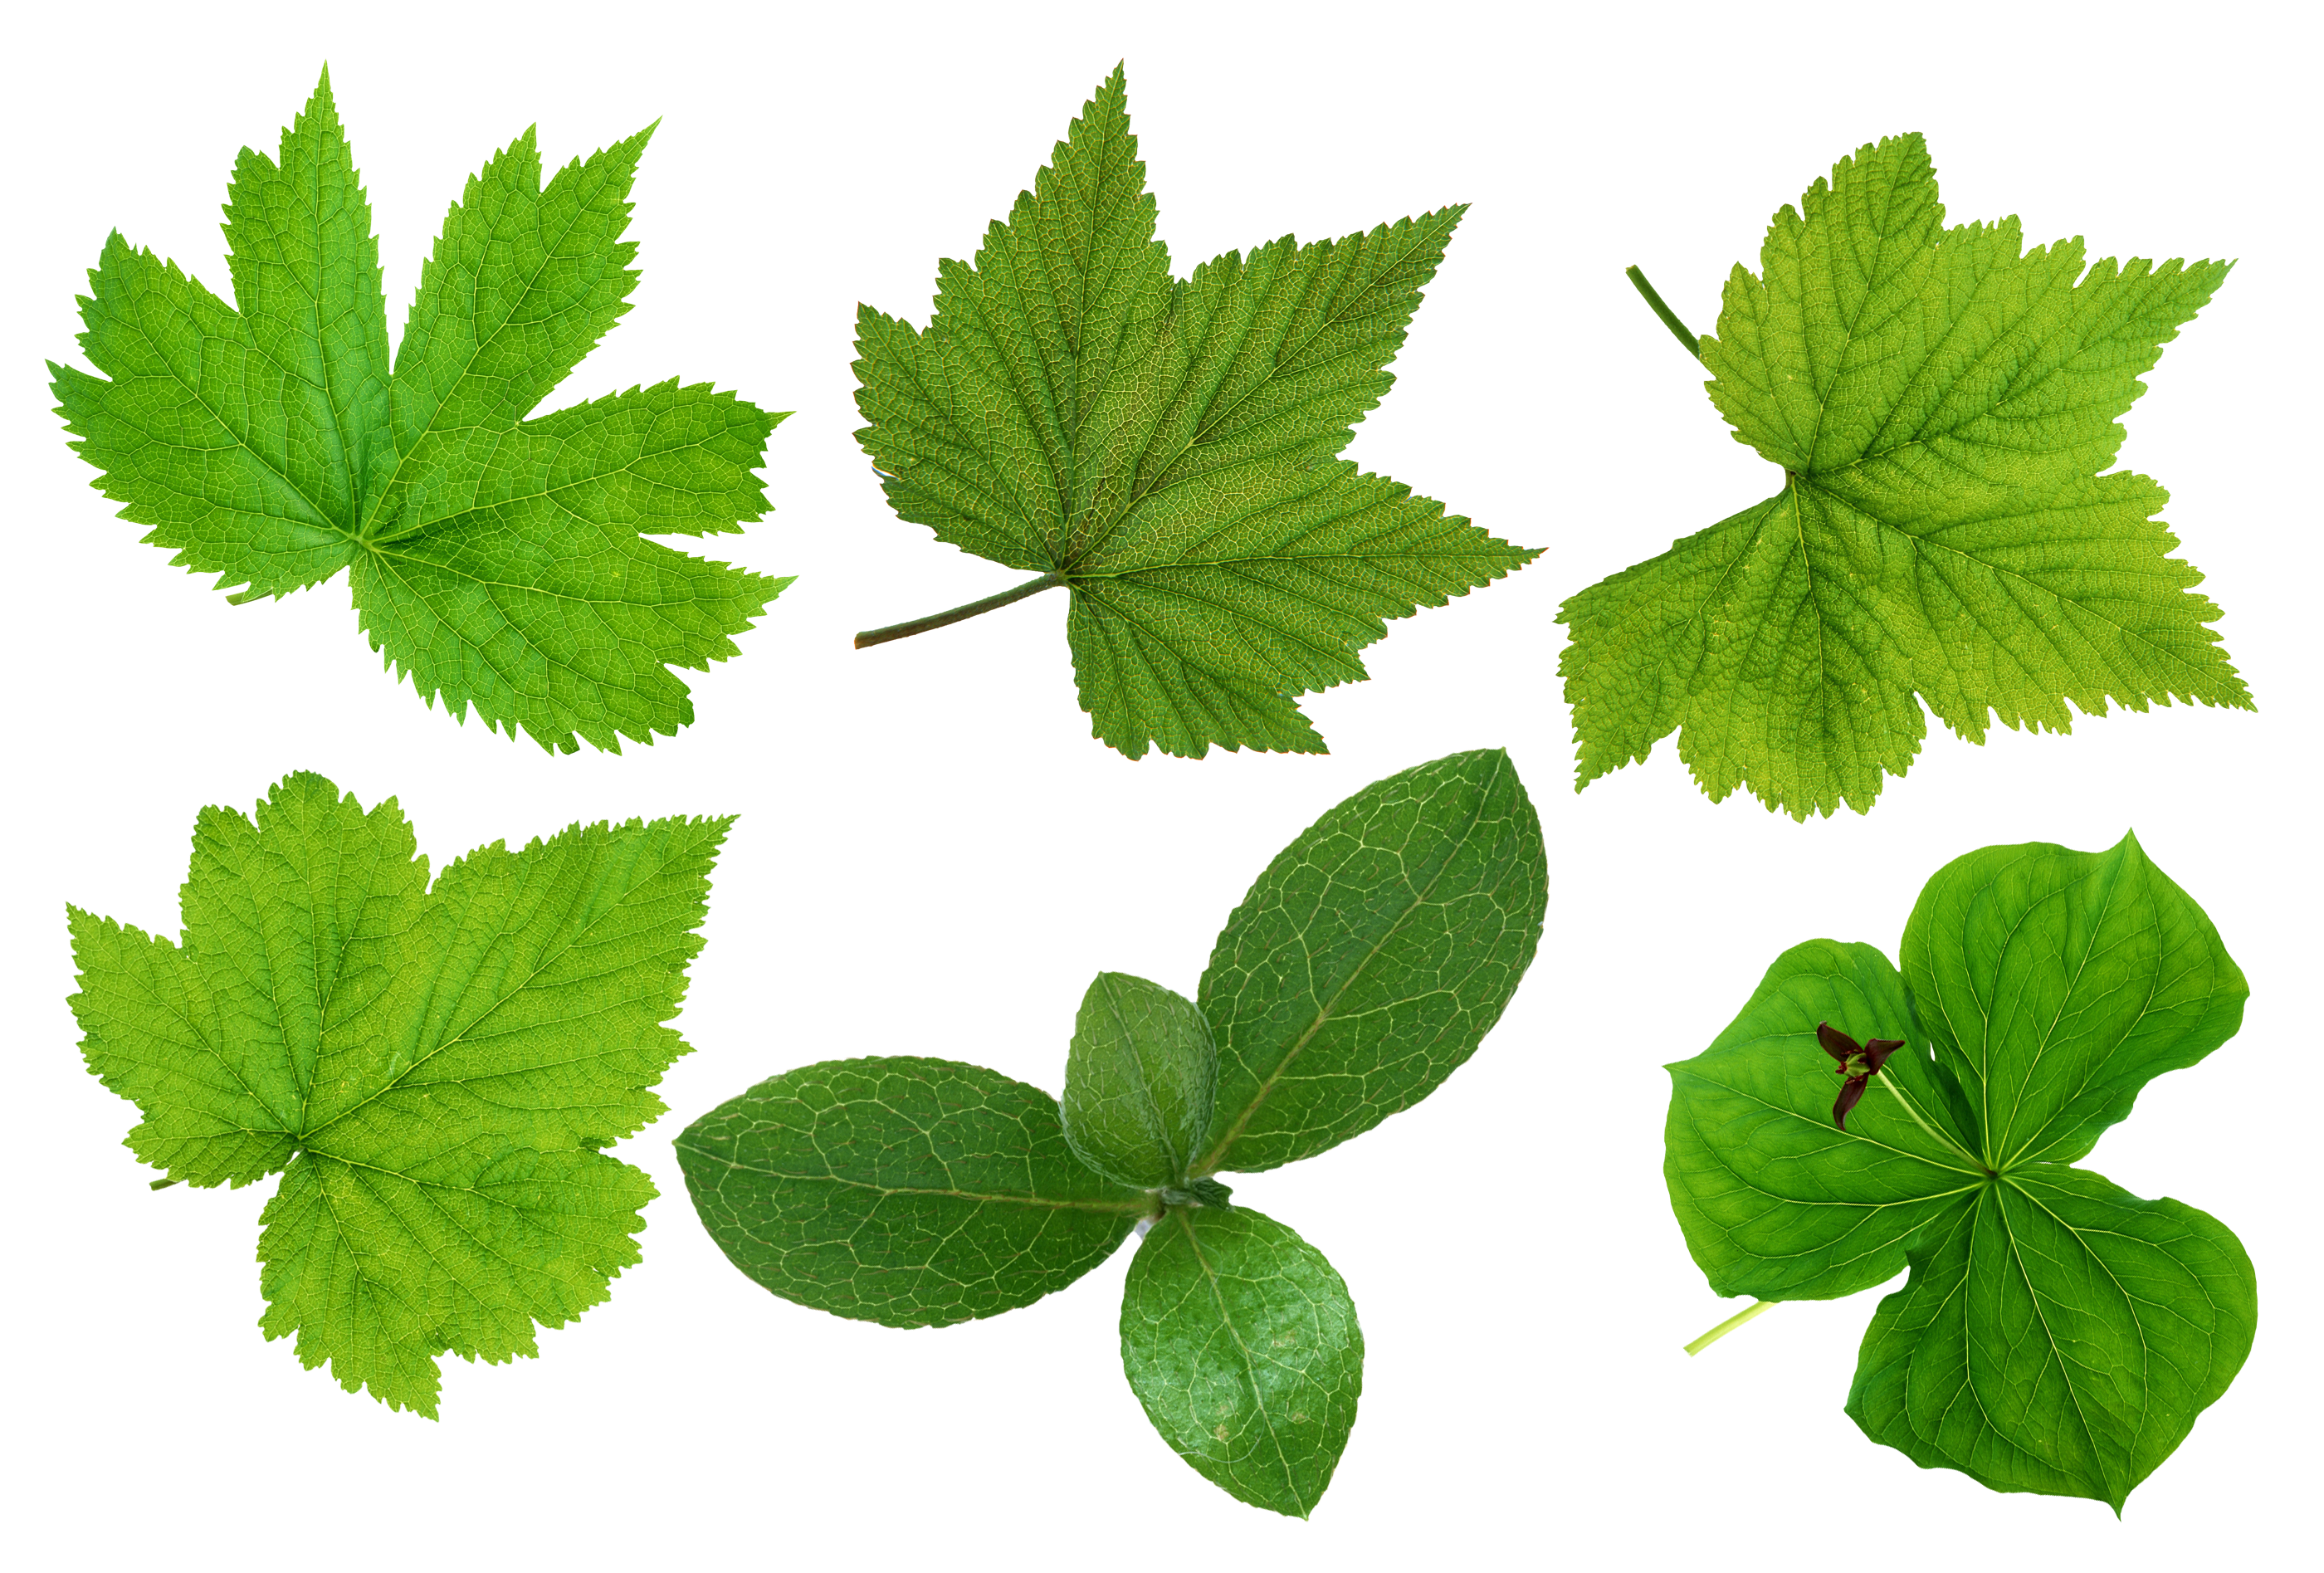 Green Leaves Png Images image #44872